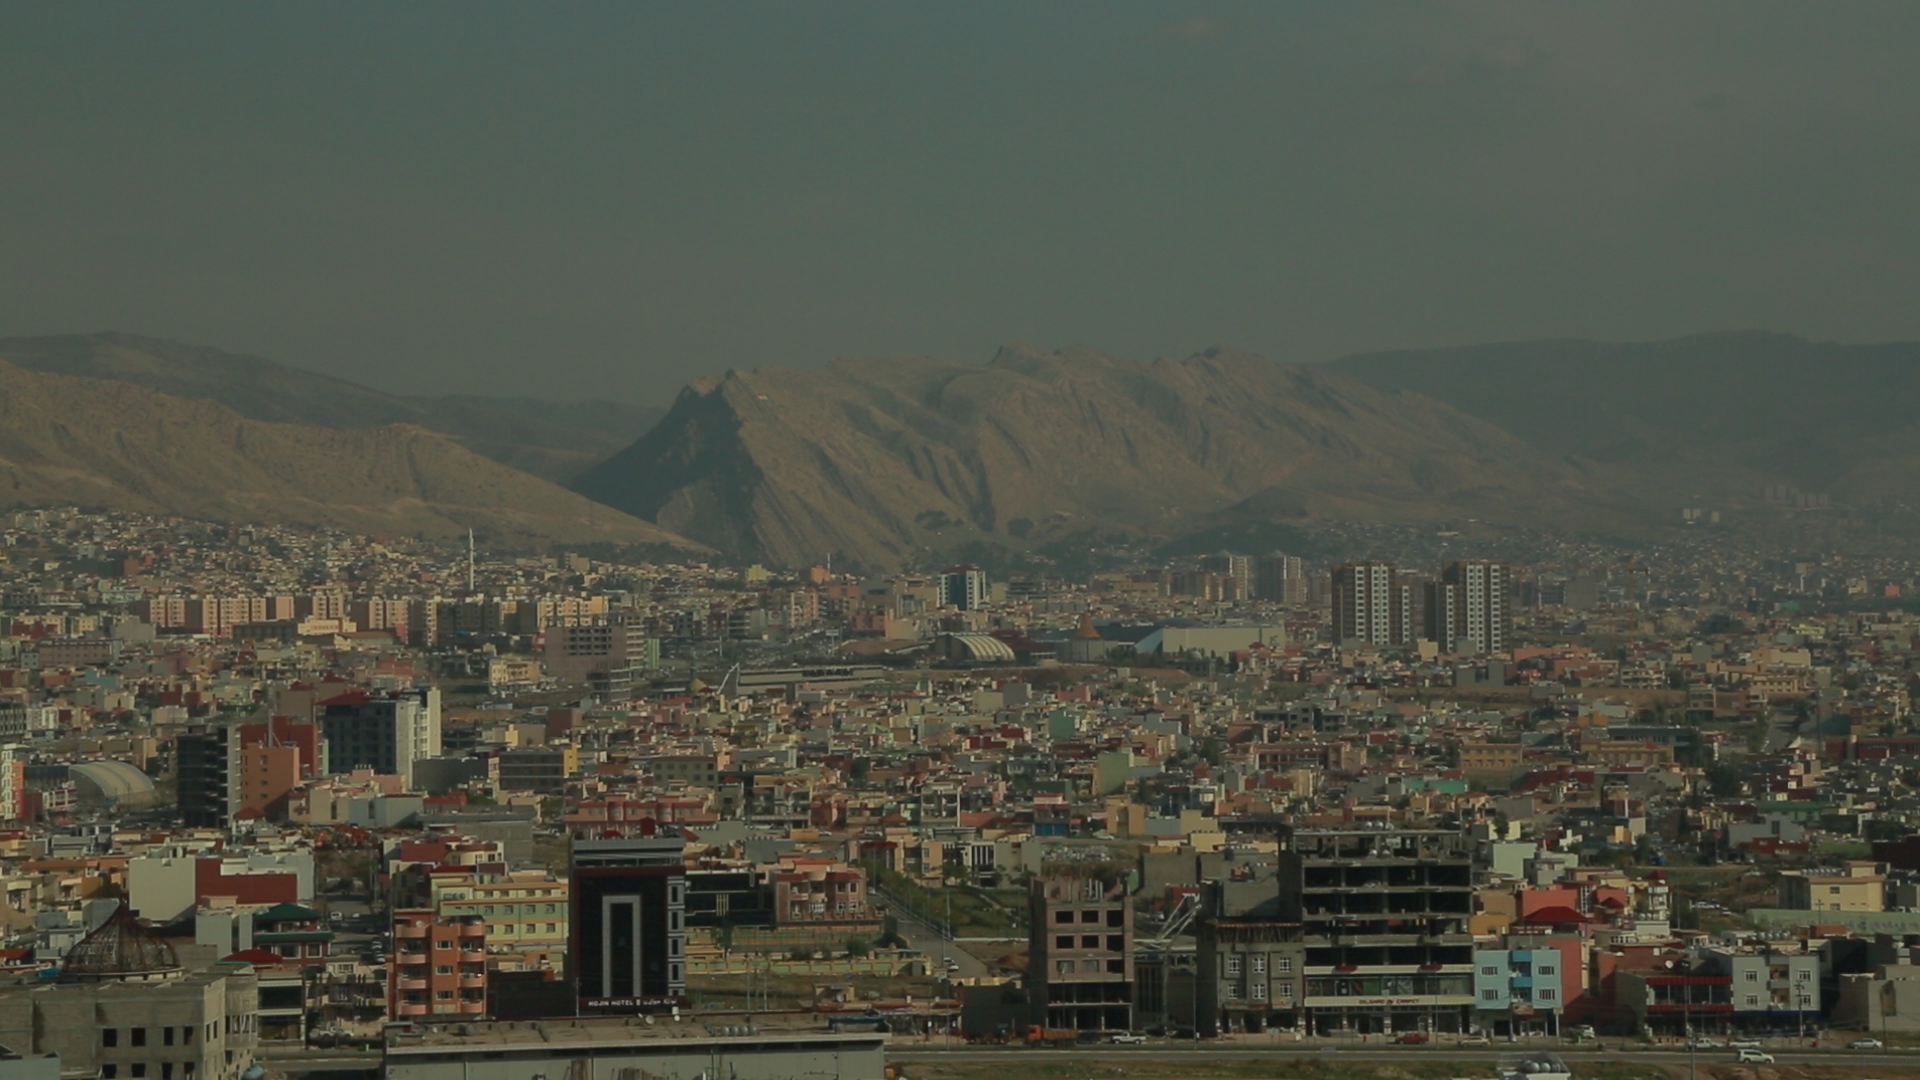 city of Duhok